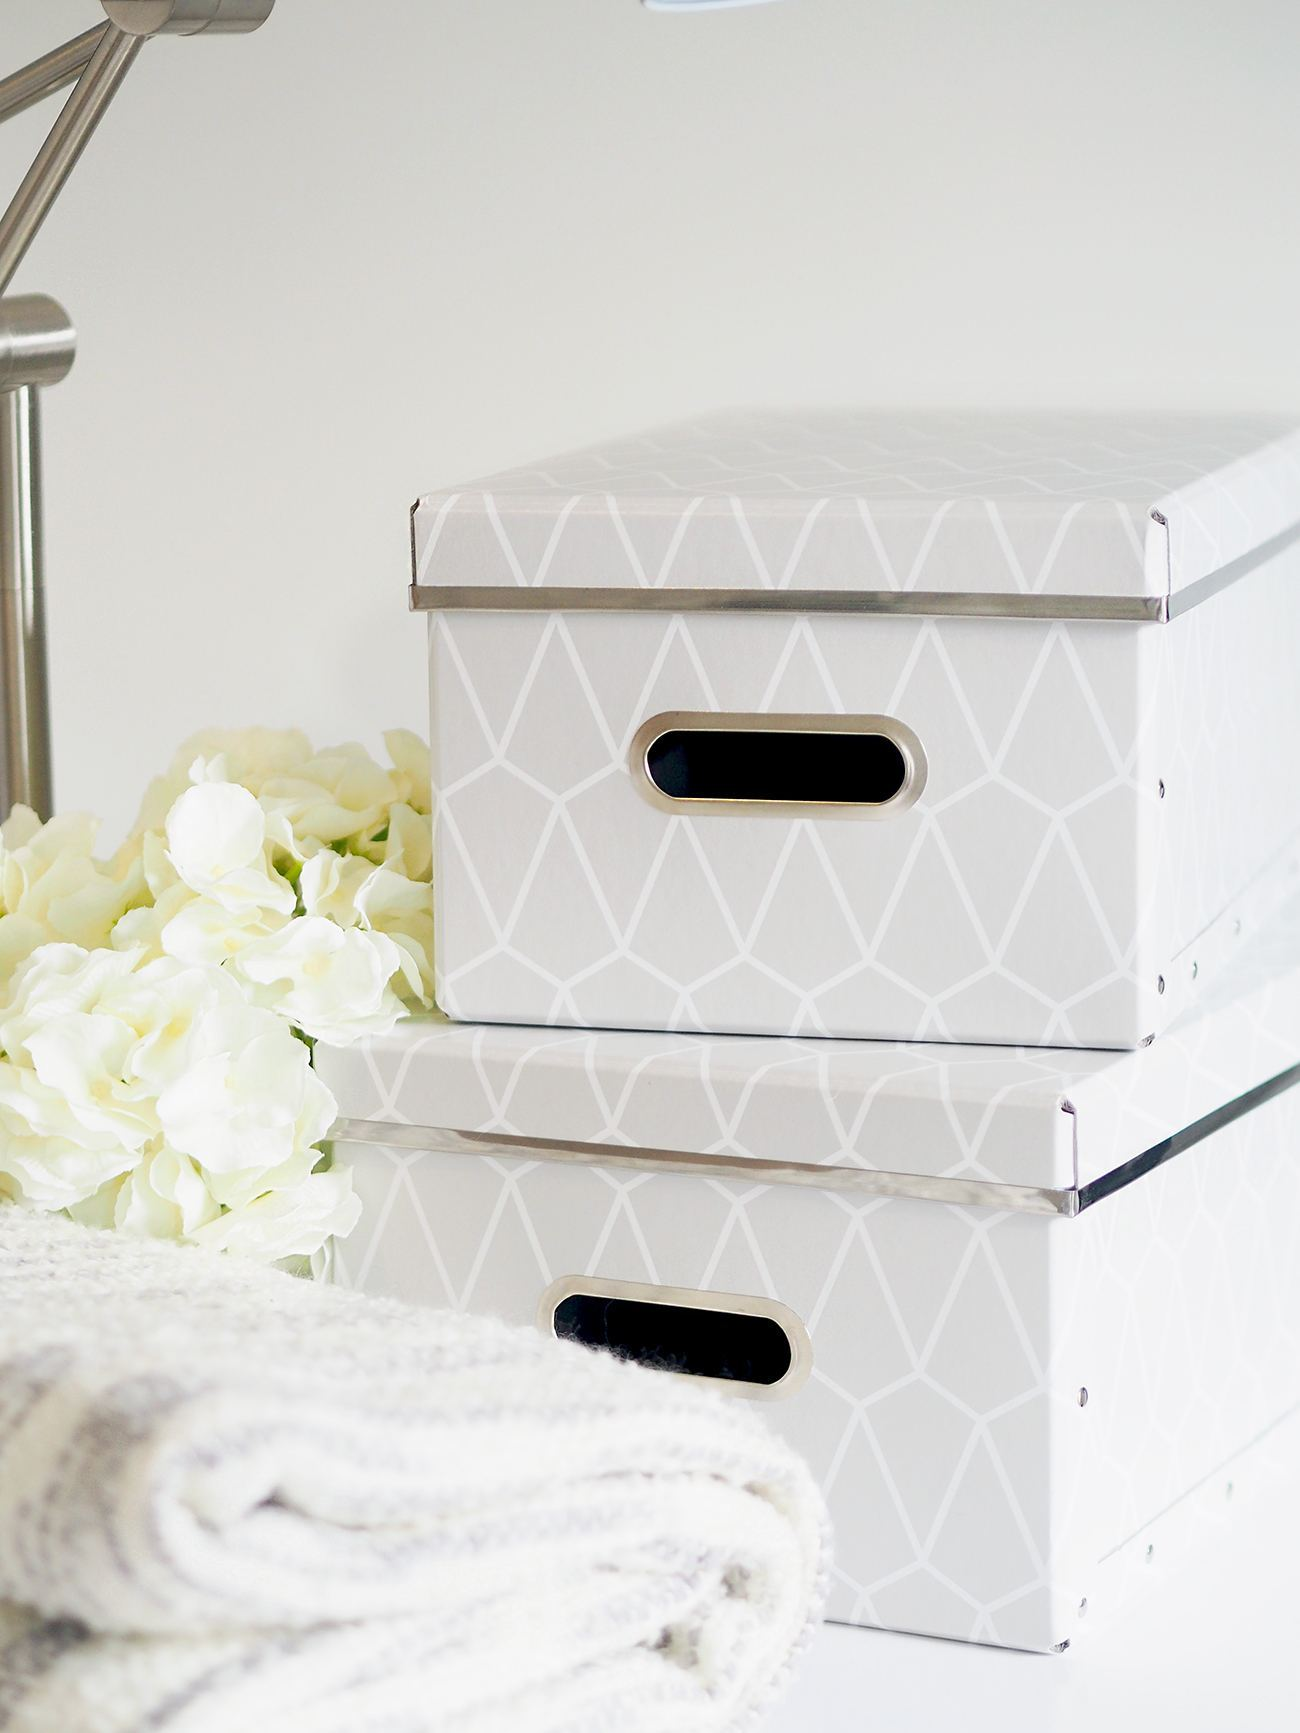 Spring Homeware Homesense Haul - Bang on Style